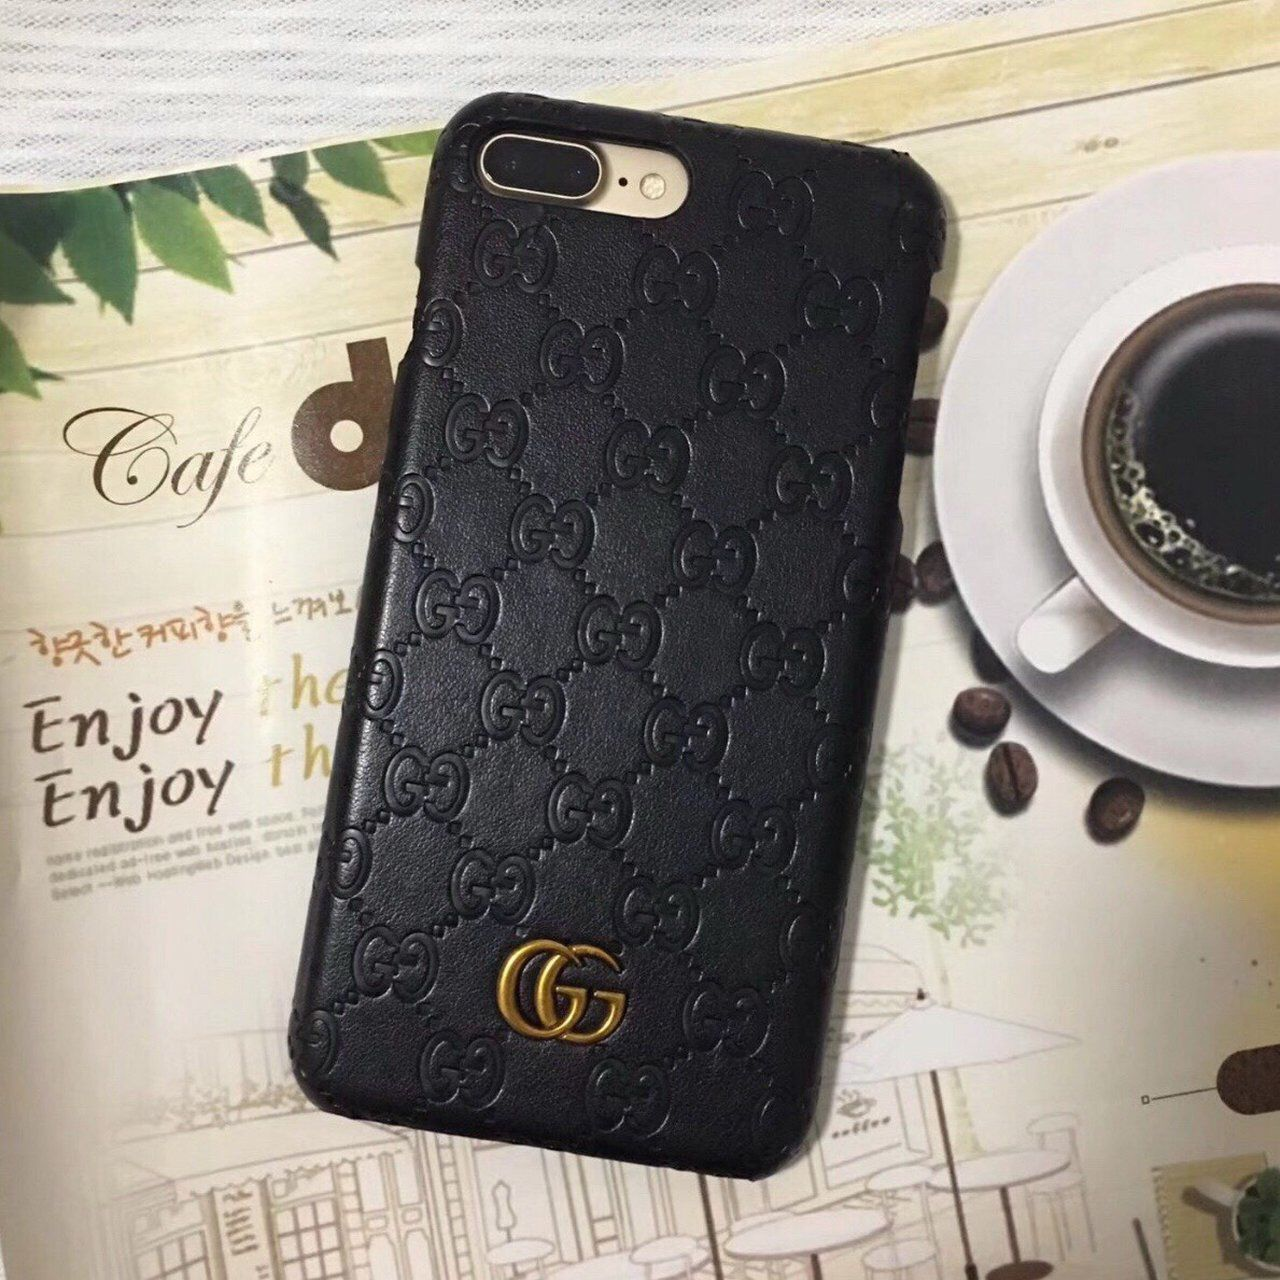 3522ba4107940c Apple iPhone 8s Plus Leather Gucci Case #appleiphone #gucci #freeshipping